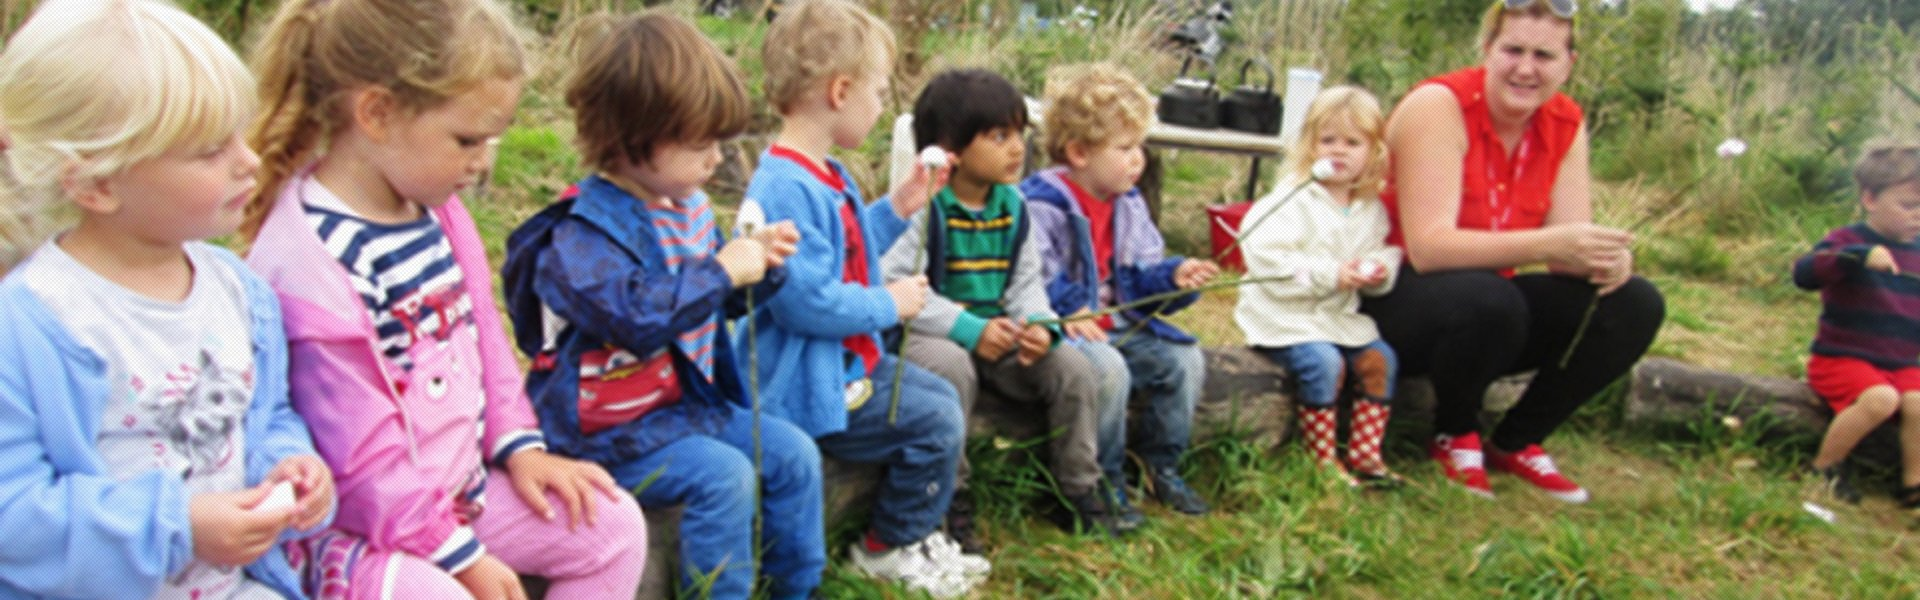 A row of children in outdoor clothes, sitting on a log with a carer